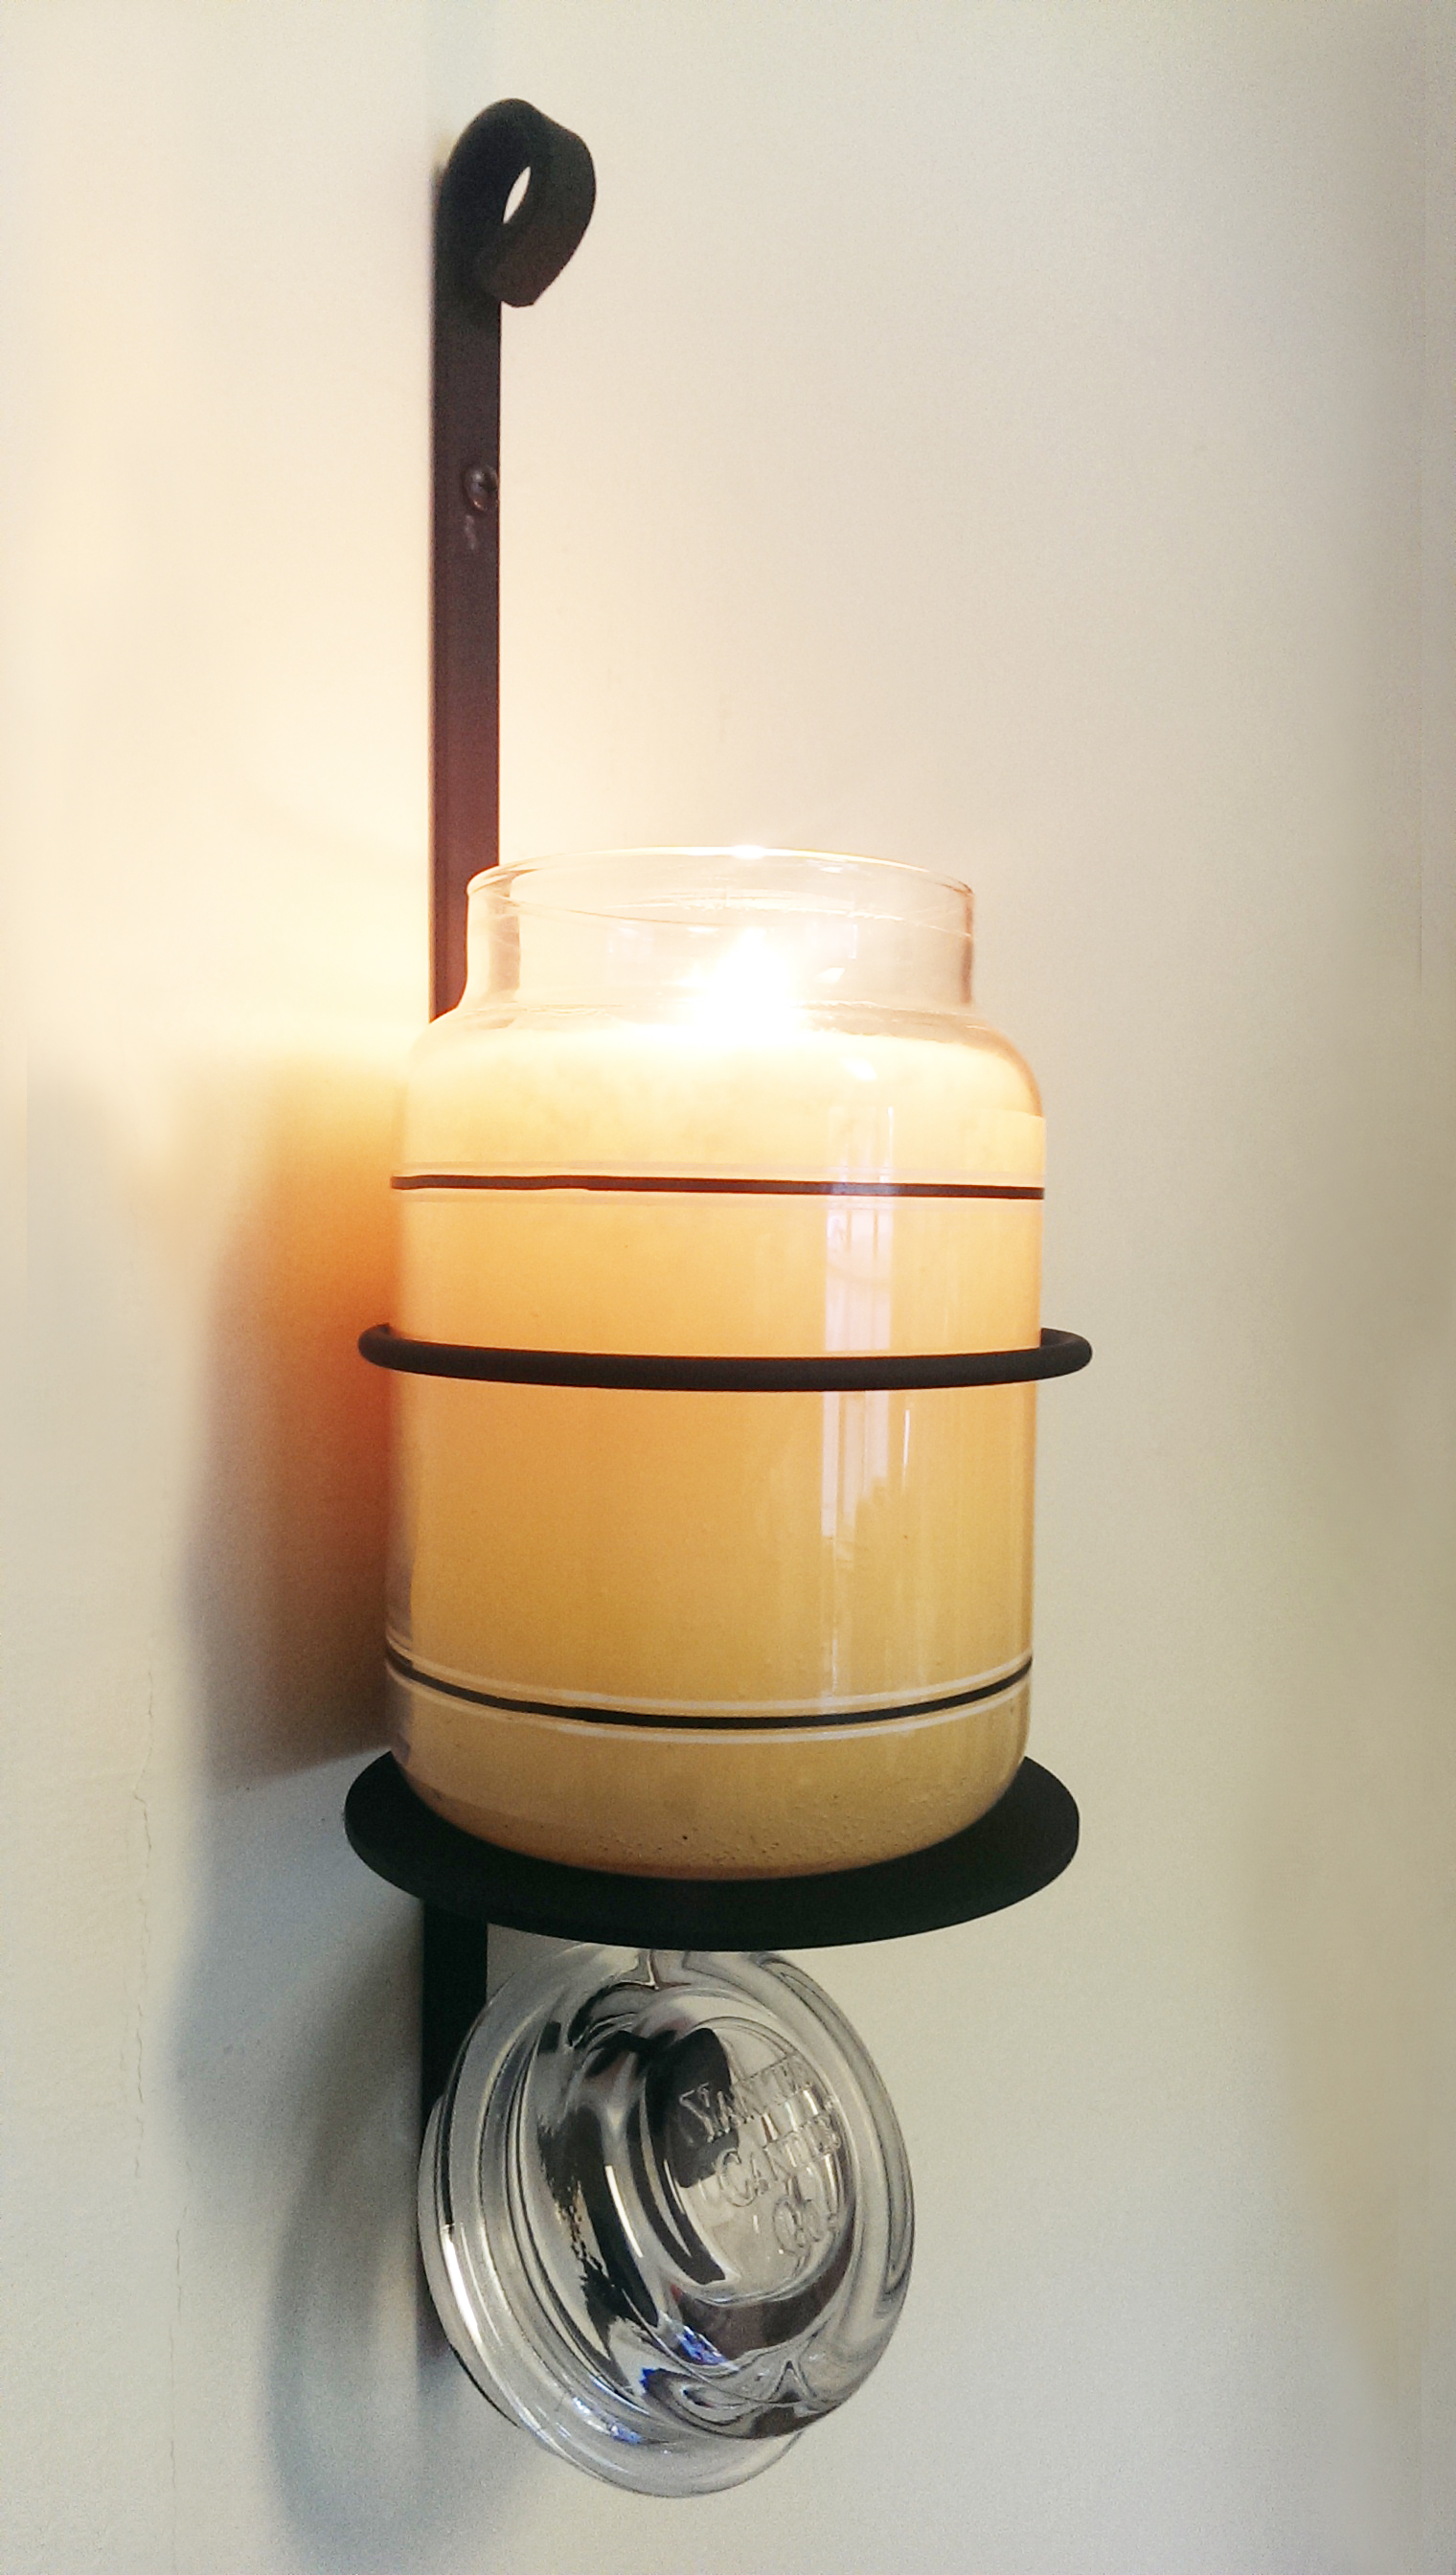 NO LONGER AVAILABLE - Candle Jar Sconce Holder